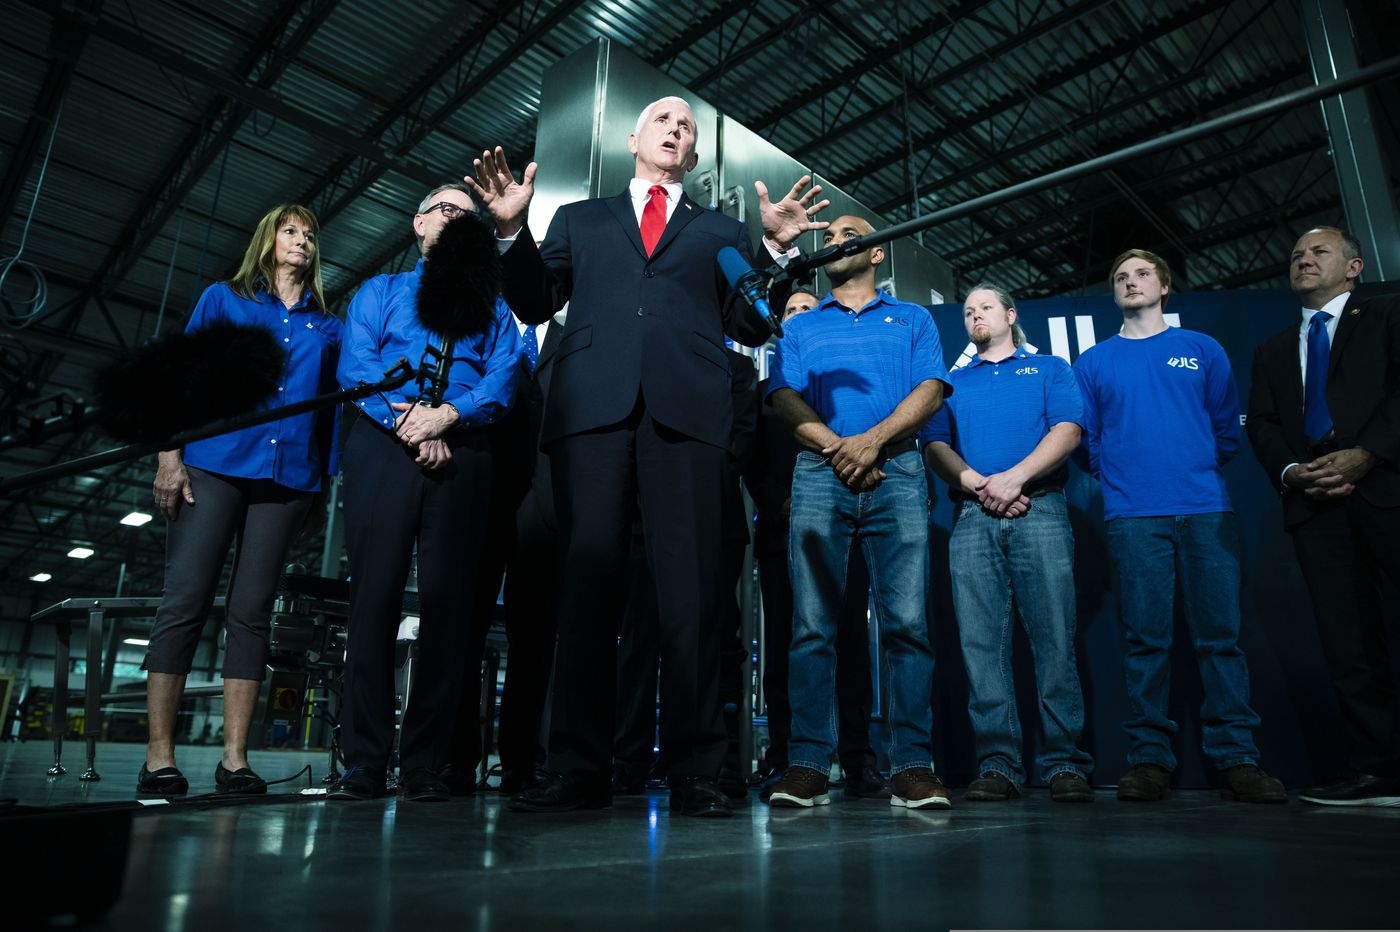 VP Mike Pence visits Pa., urging Republicans to help deliver the state for Trump again